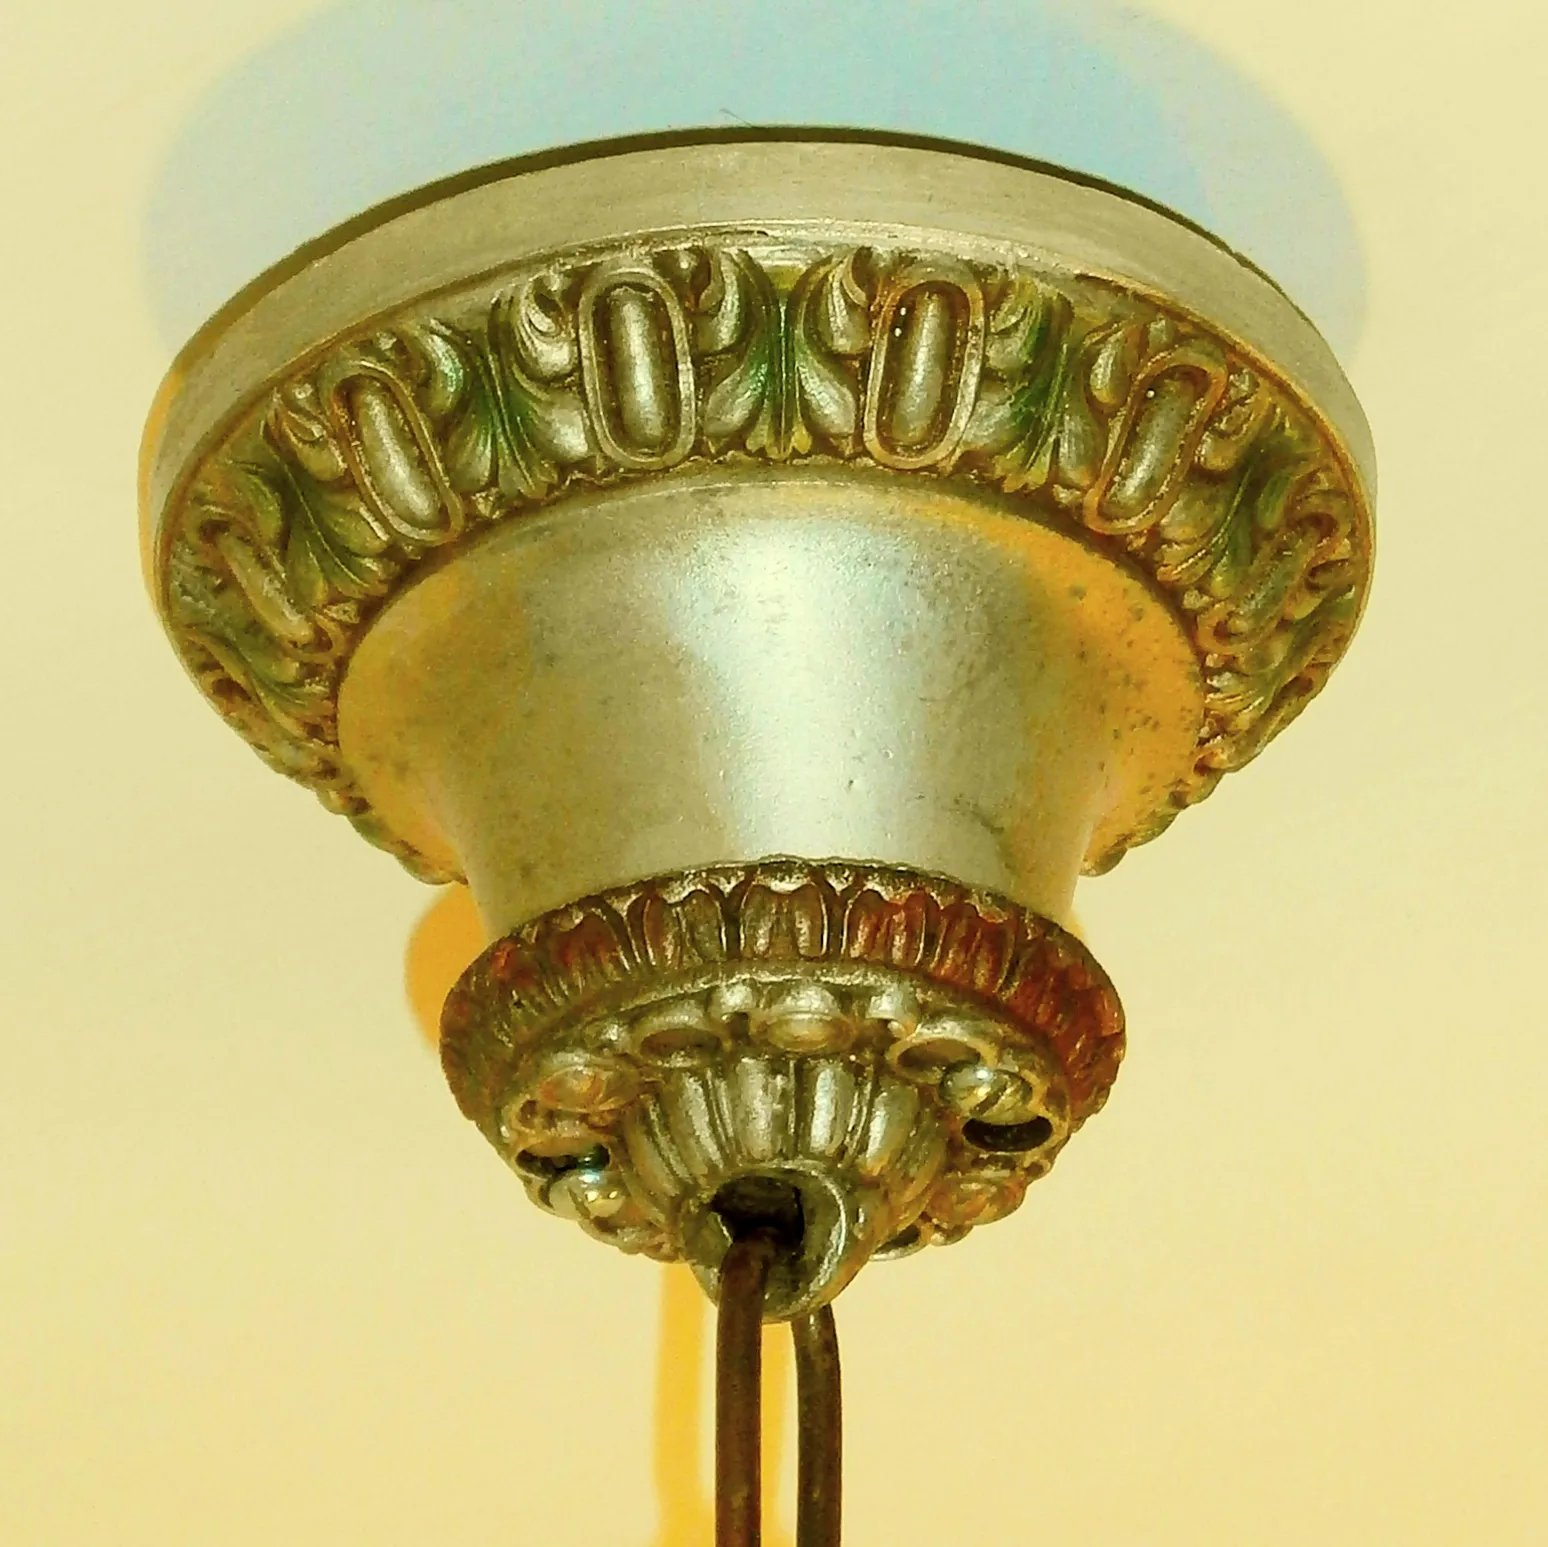 Light Fixtures Toledo Ohio: Riddle Silvery Polychrome 5-Light Revival Chandelier Light